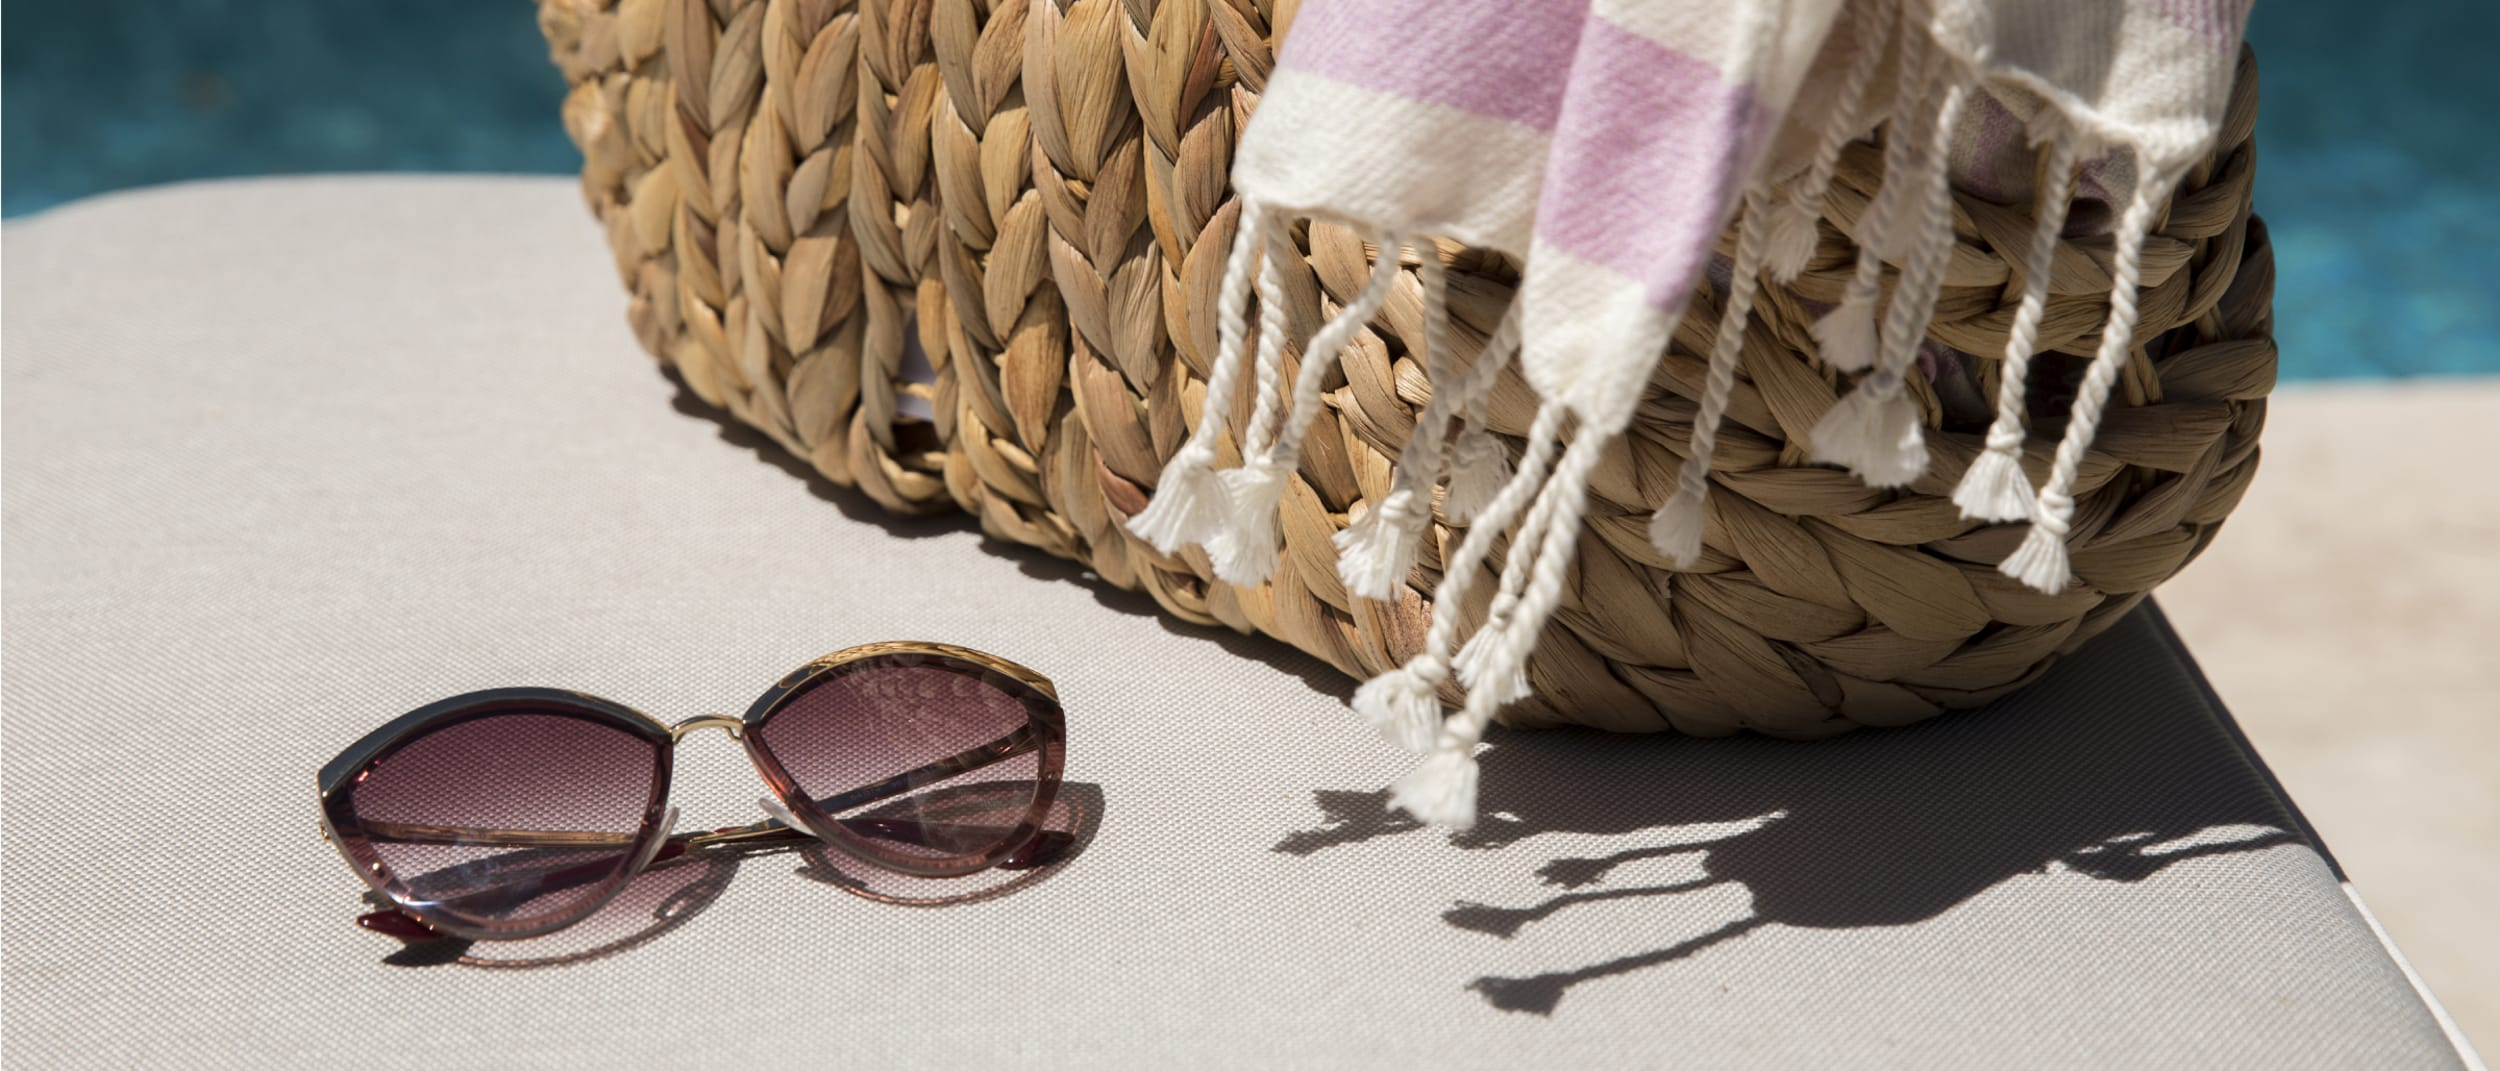 Revamp your summer beach bag